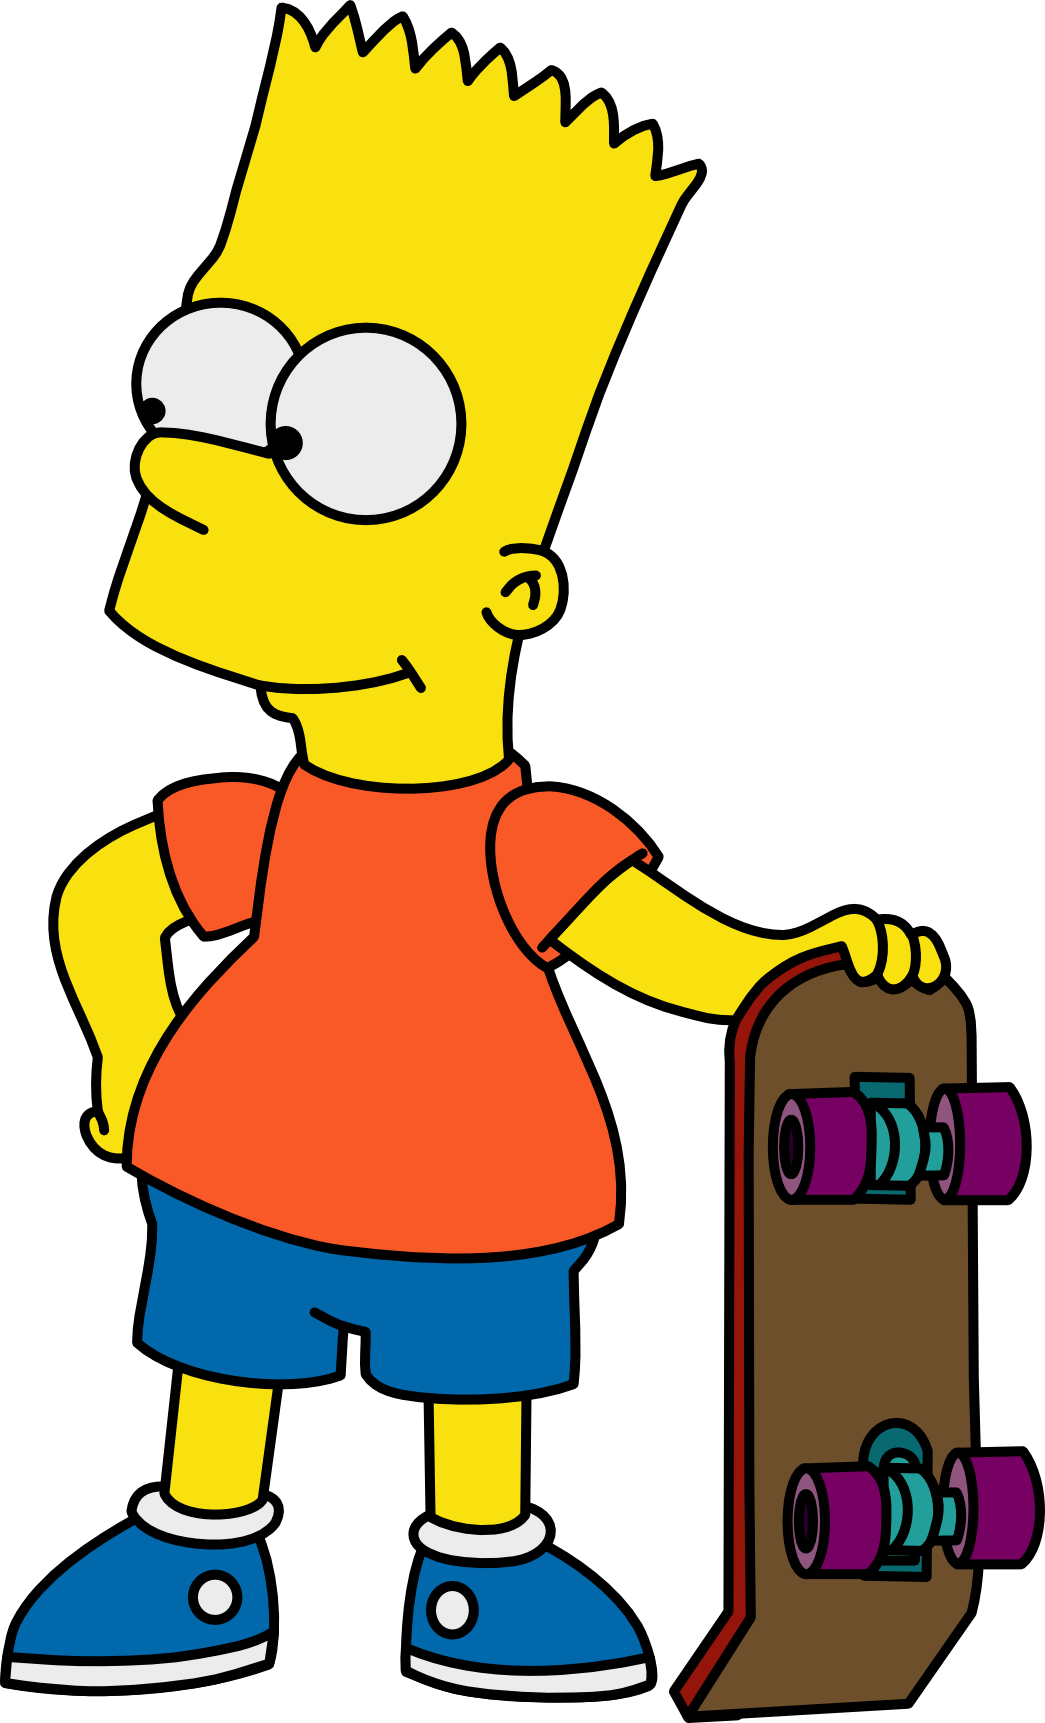 Bart with his Skateboard by Mighty355.deviantart.com on @DeviantArt ...